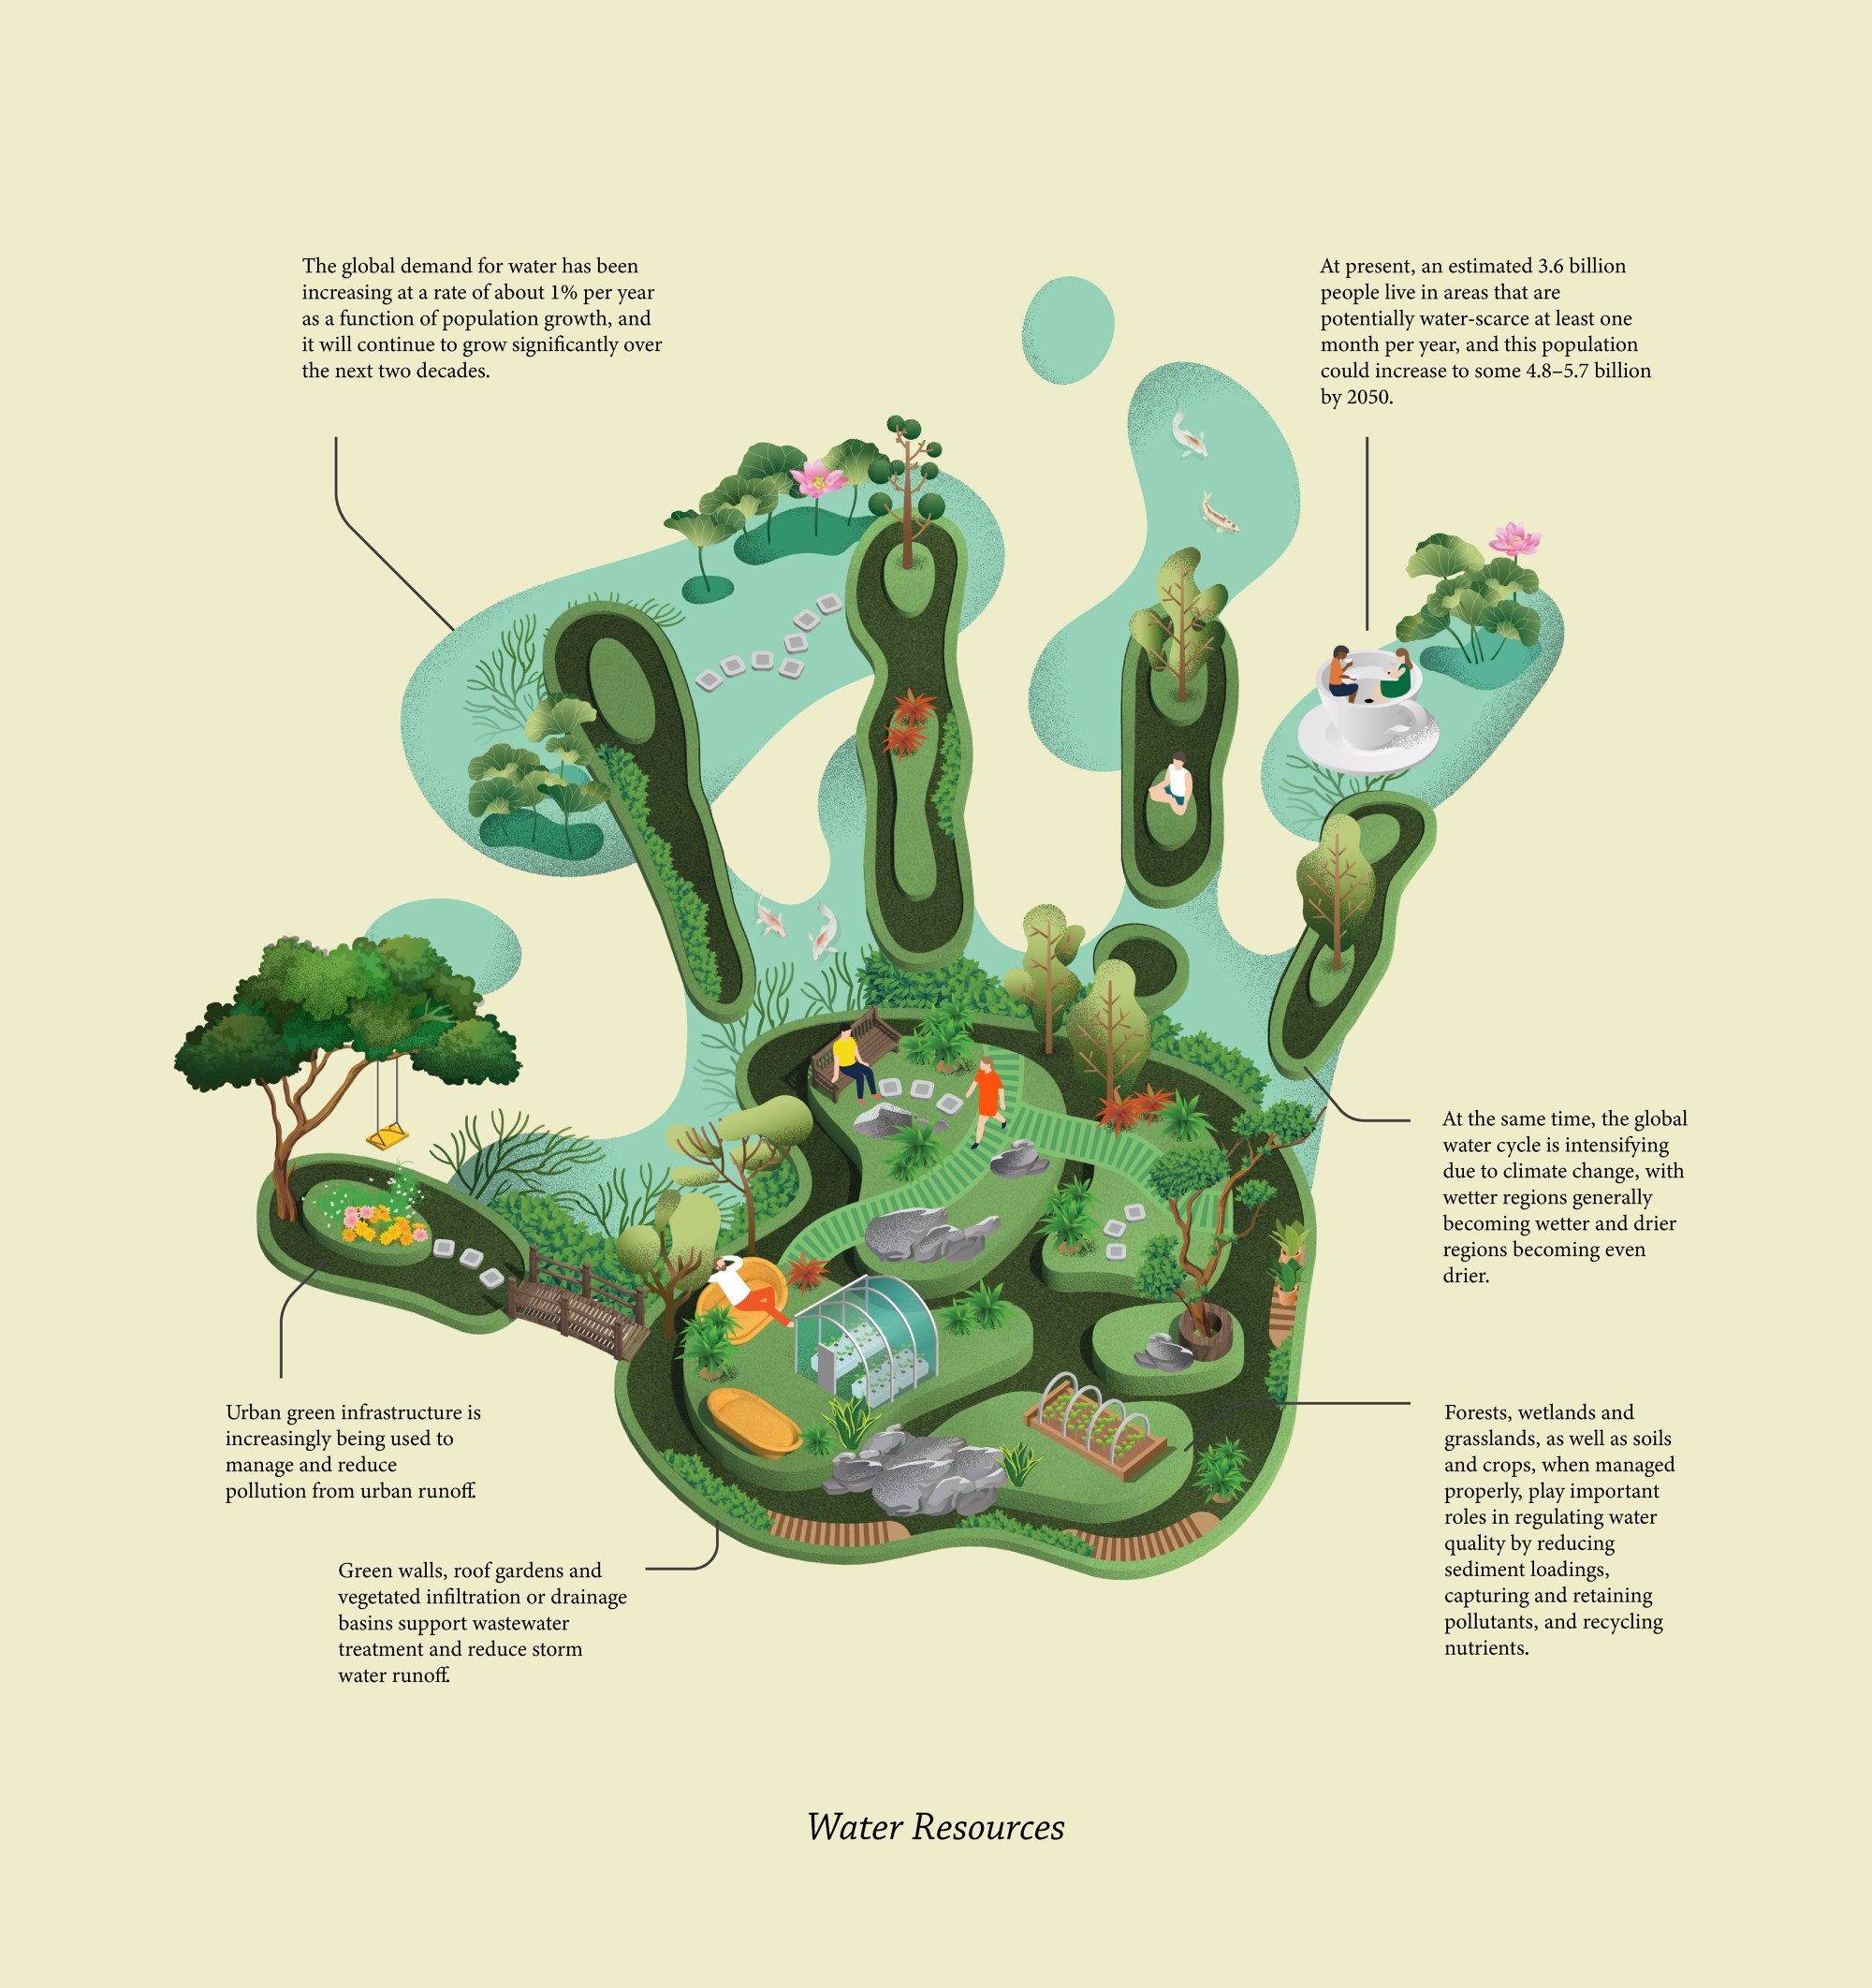 illustrated image of a human handprint with lots of water and greenery woven throughout, along with facts that relate to water resource management